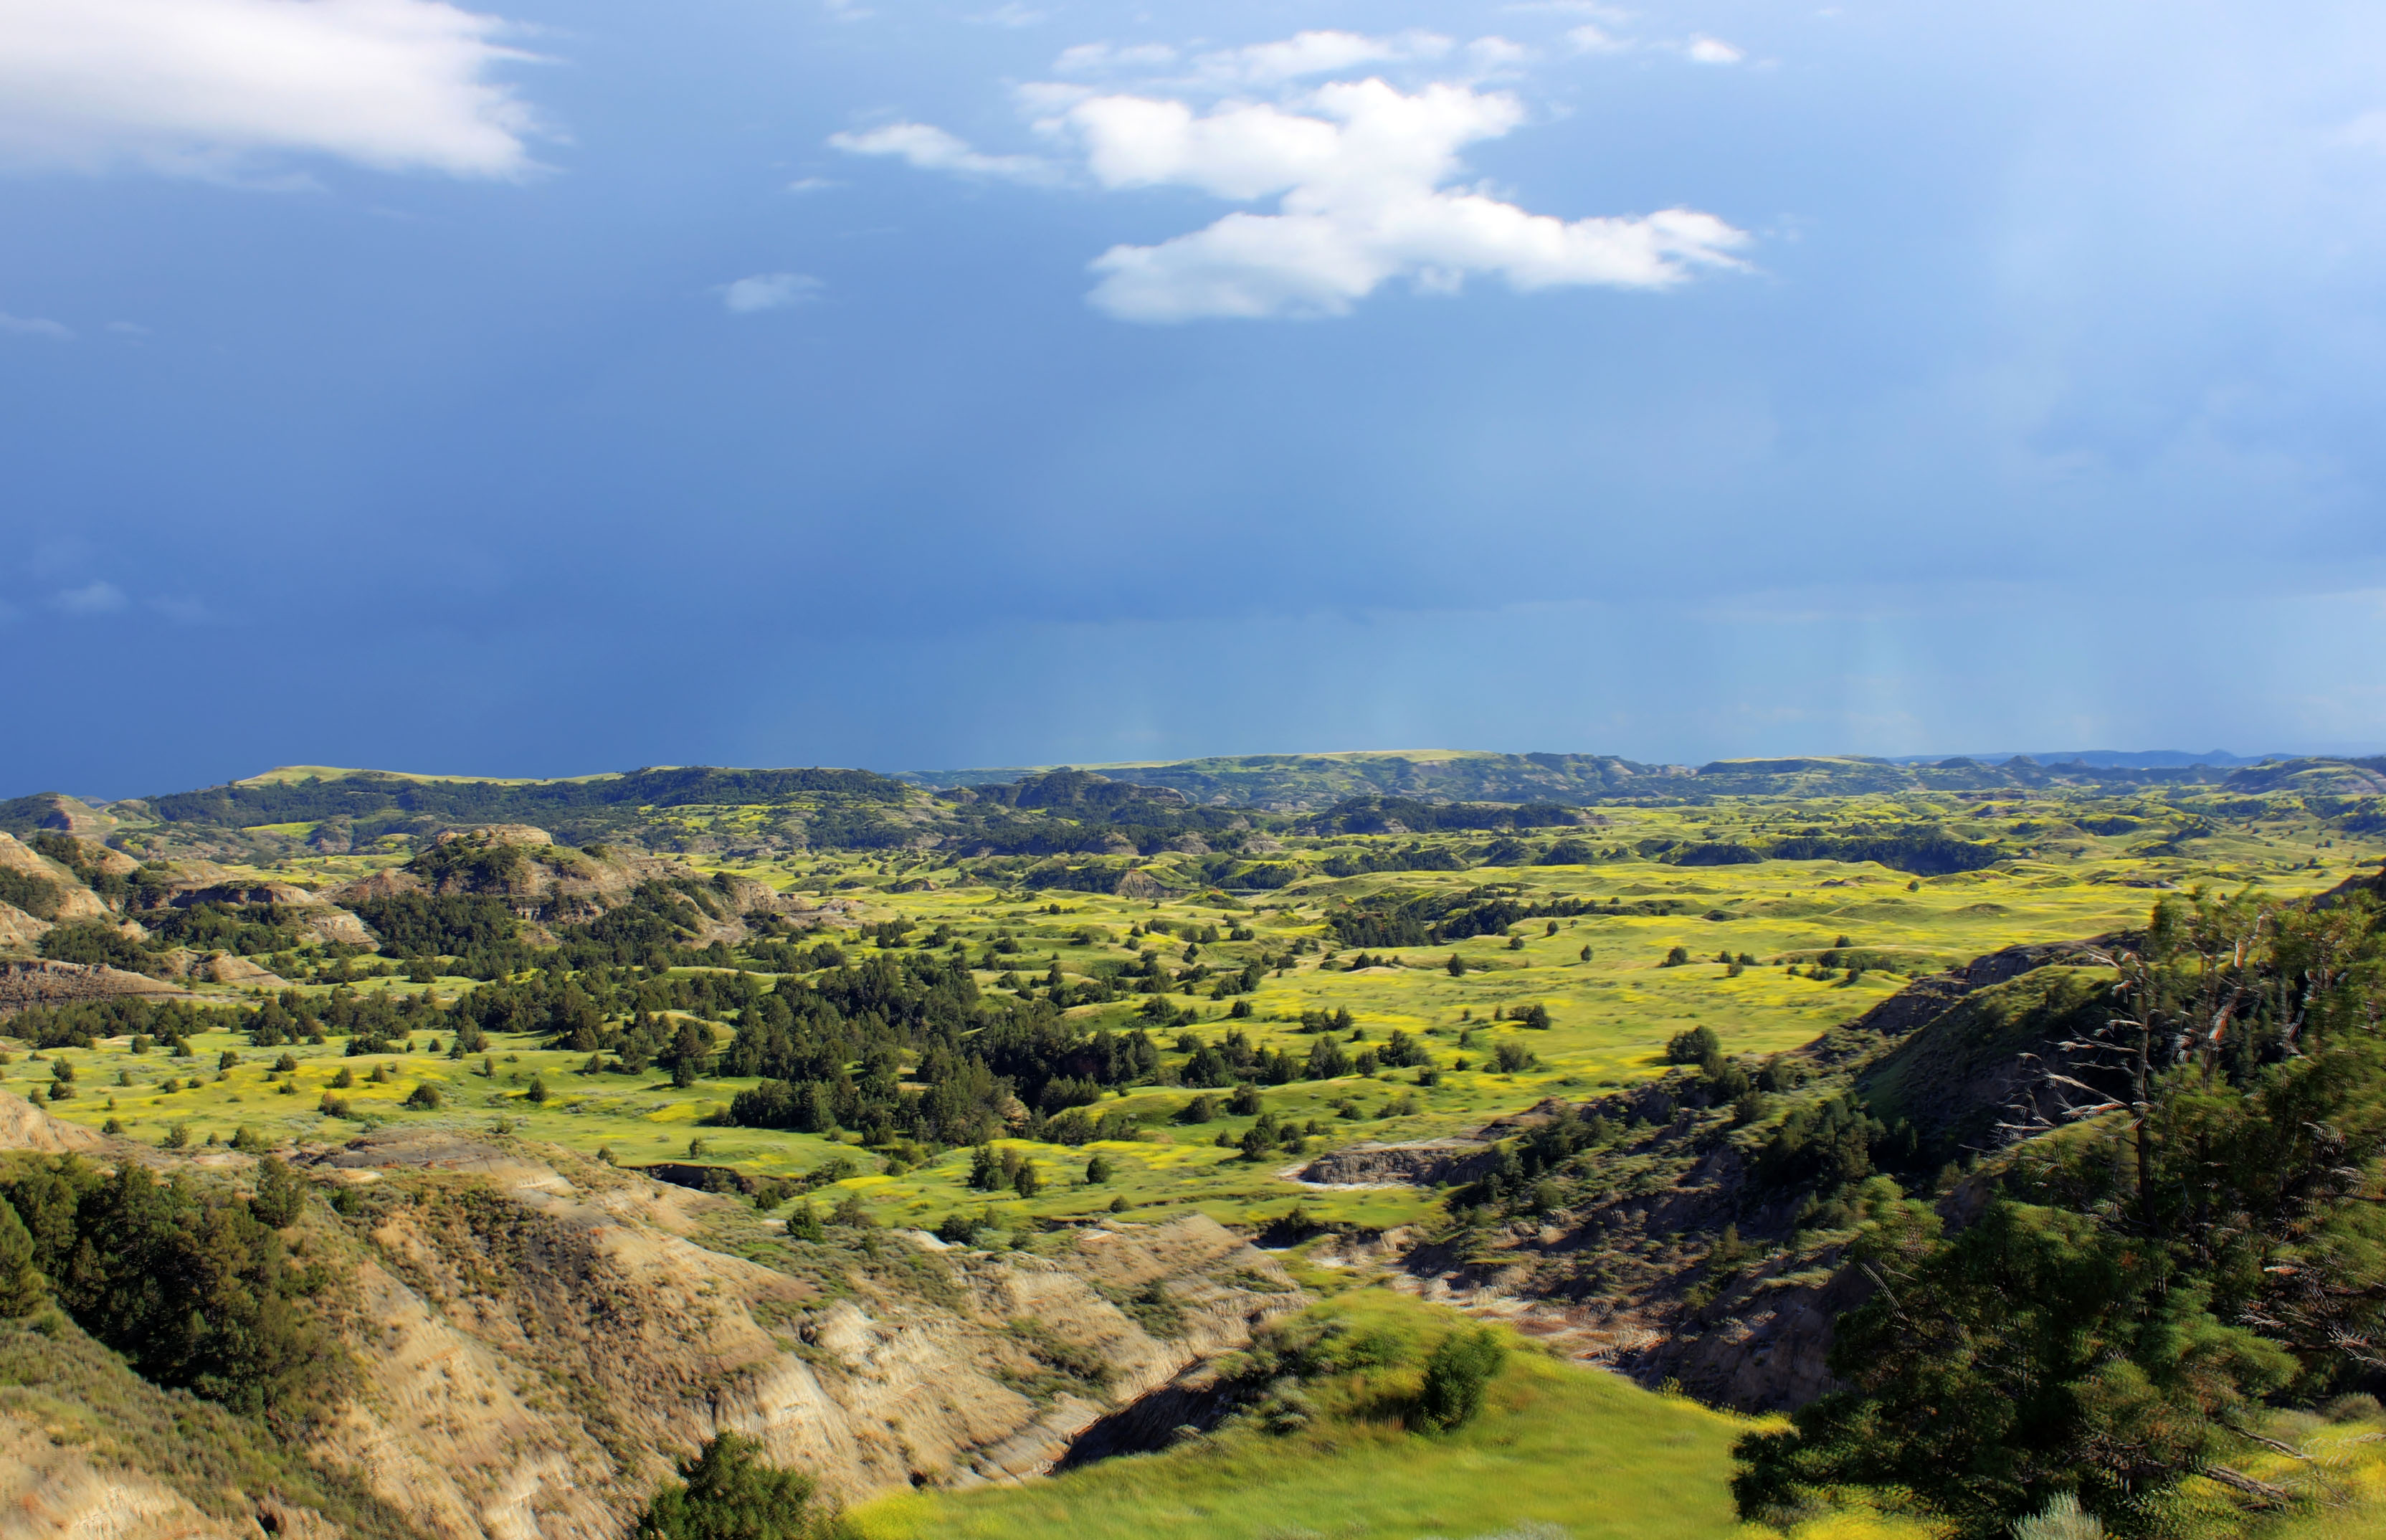 Rain in the valley at Theodore Roosevelt National Park, North.